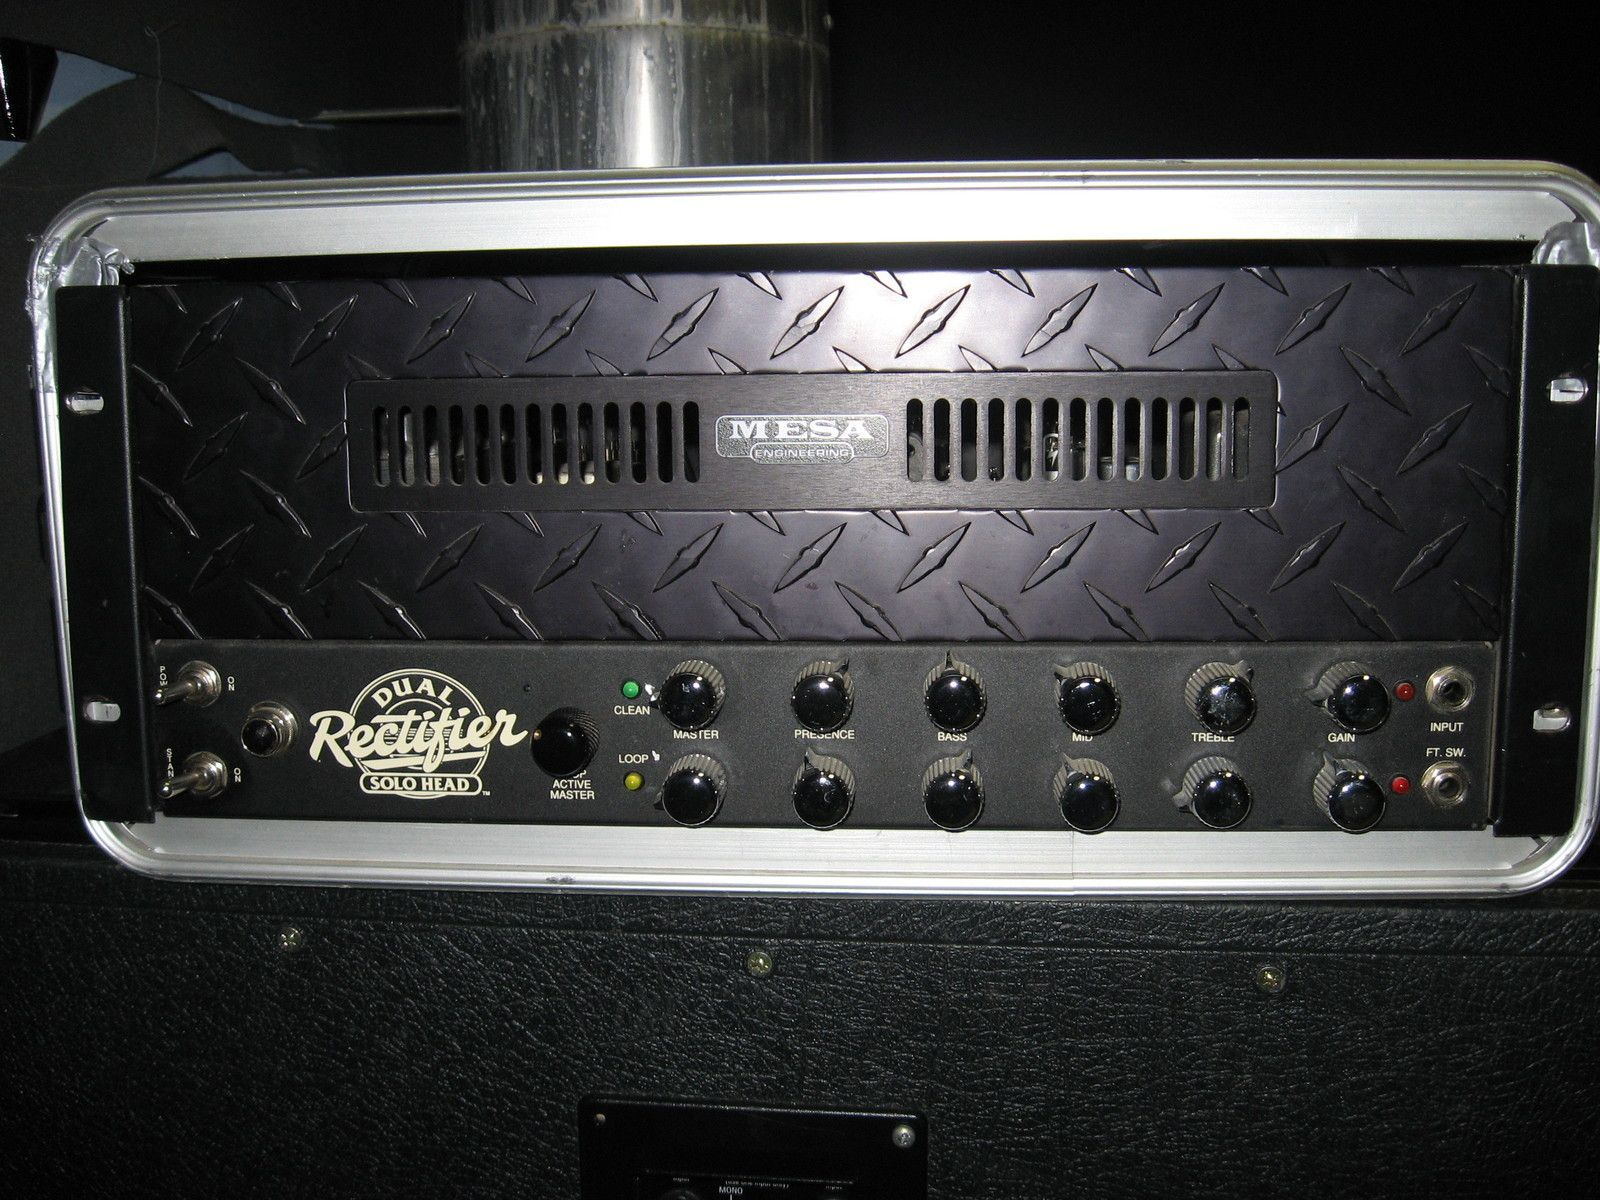 Mesa Boogie Wiring Diagram Page 3 And Schematics Engineering Cab Chromatex Source Dual Rectifier Rackmount Val777 Images